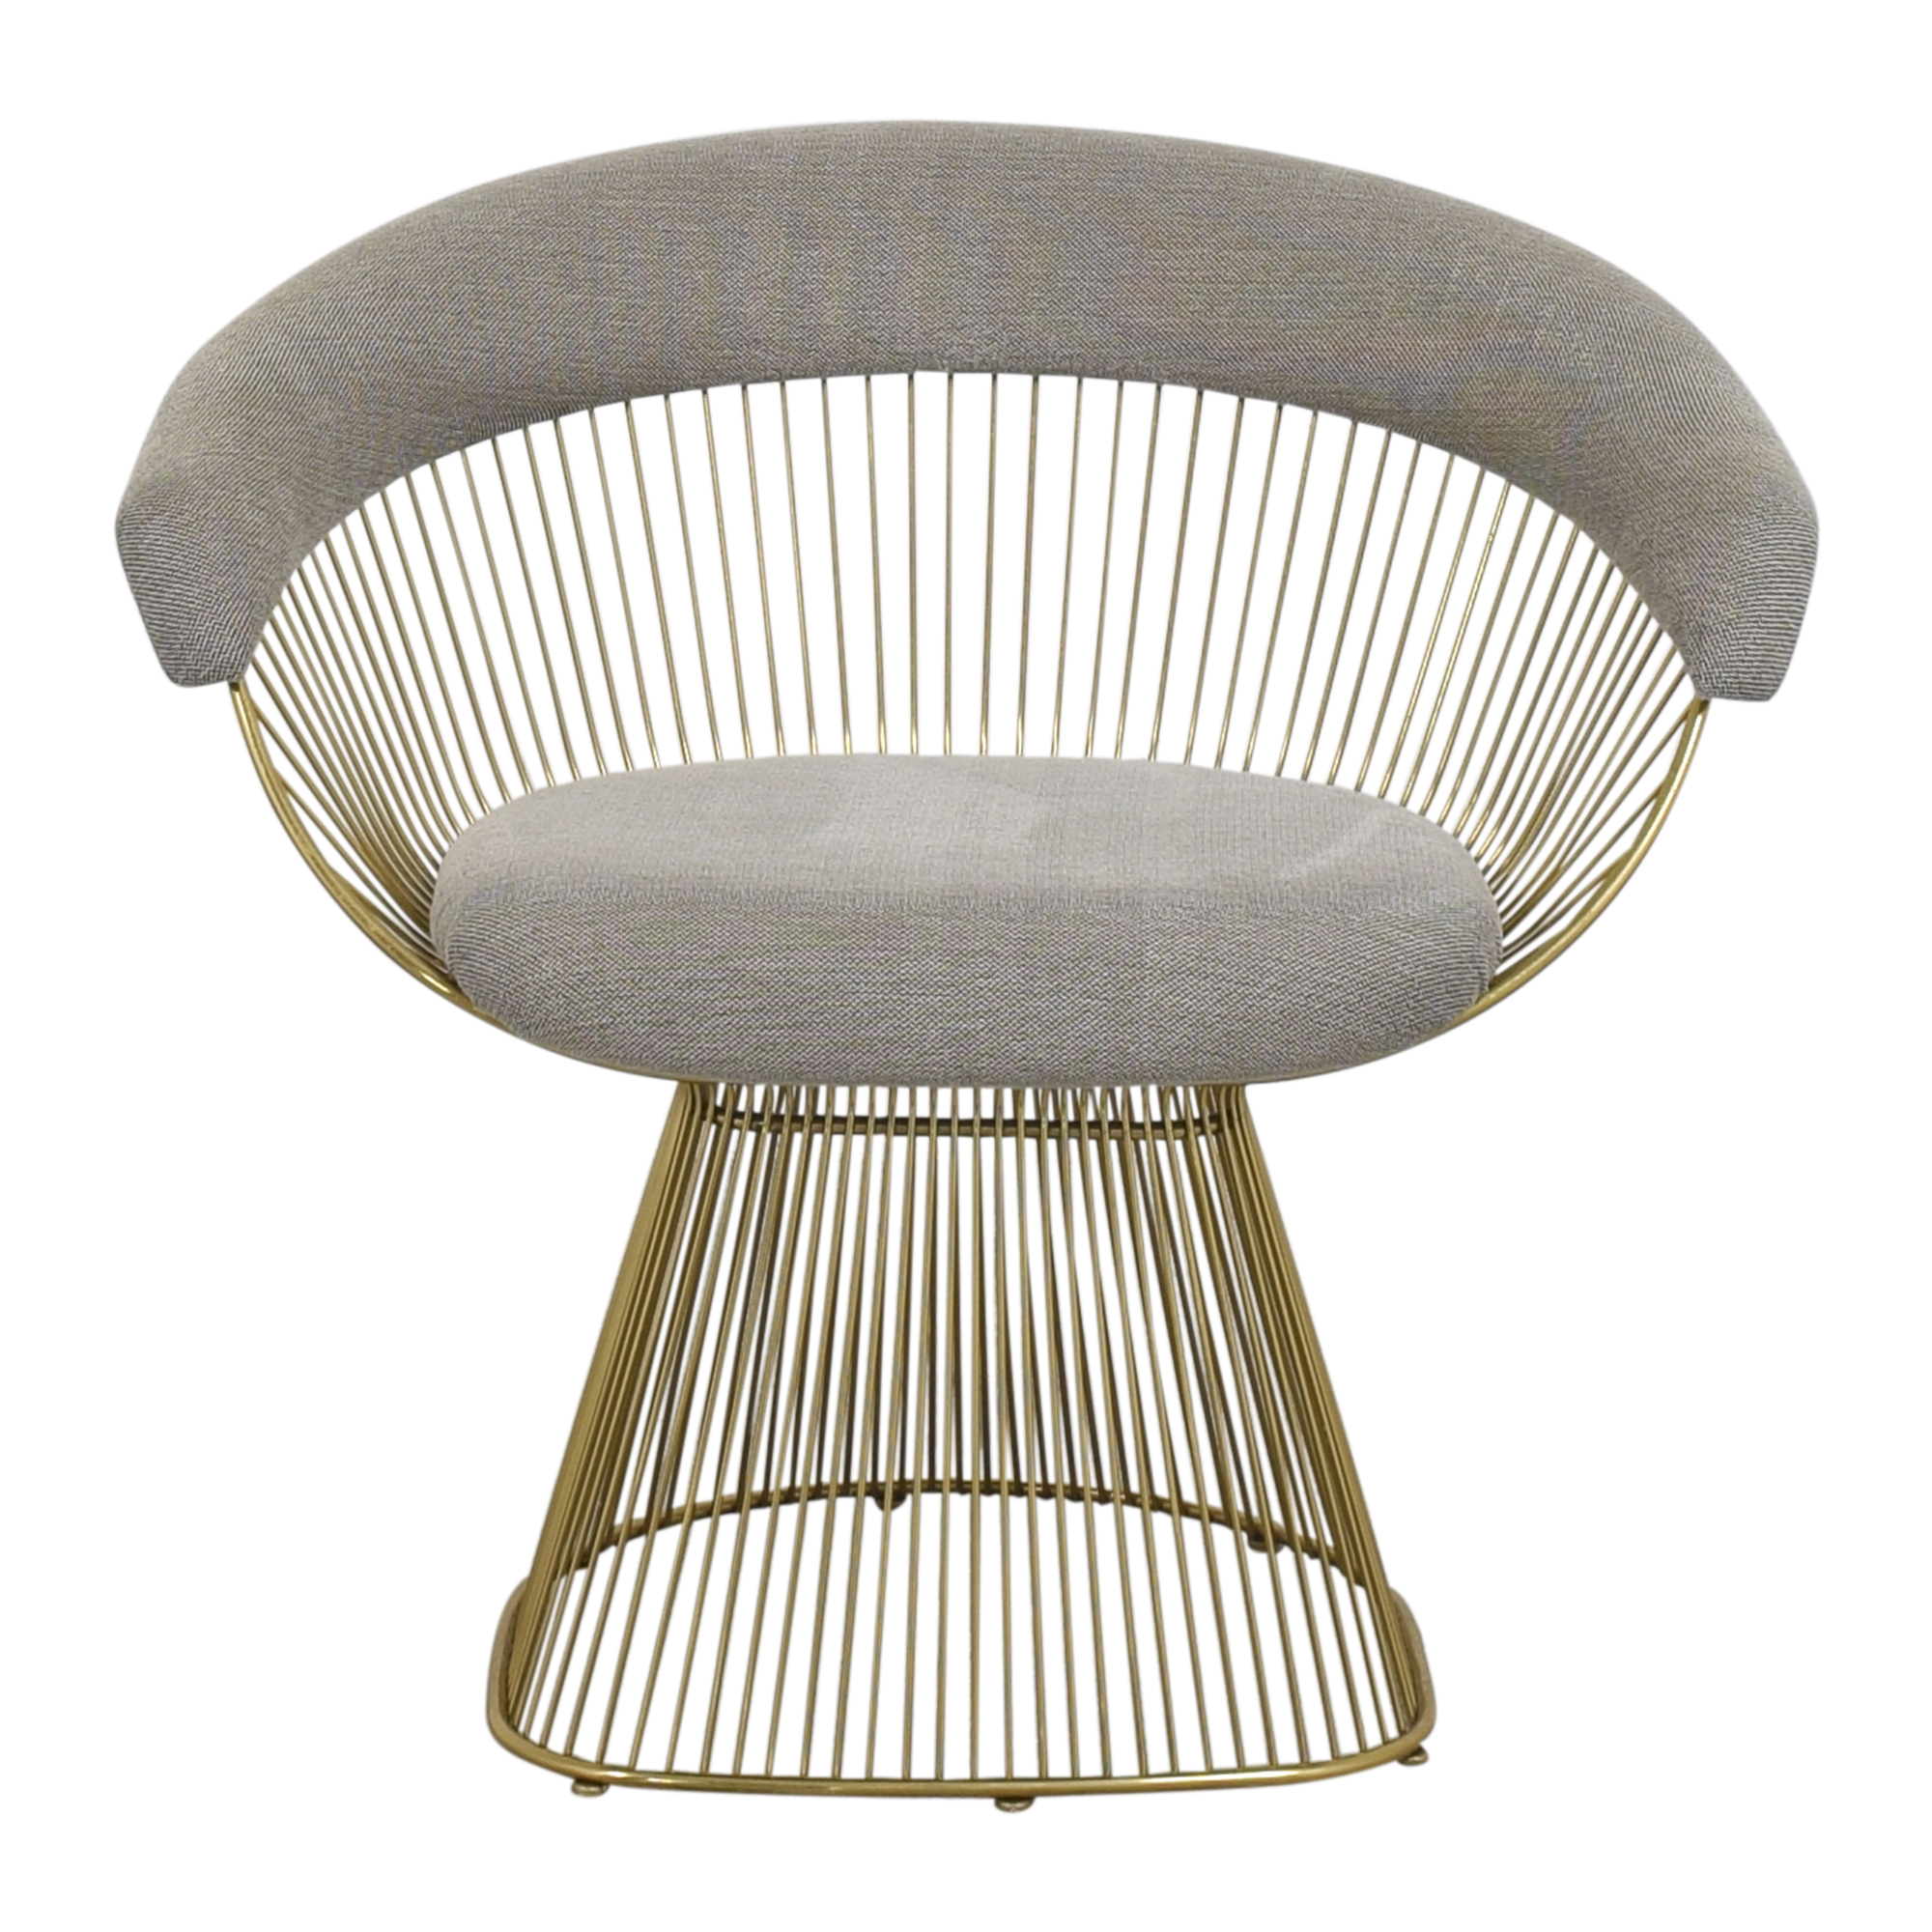 Platner-Style Soleil Accent Chair for sale